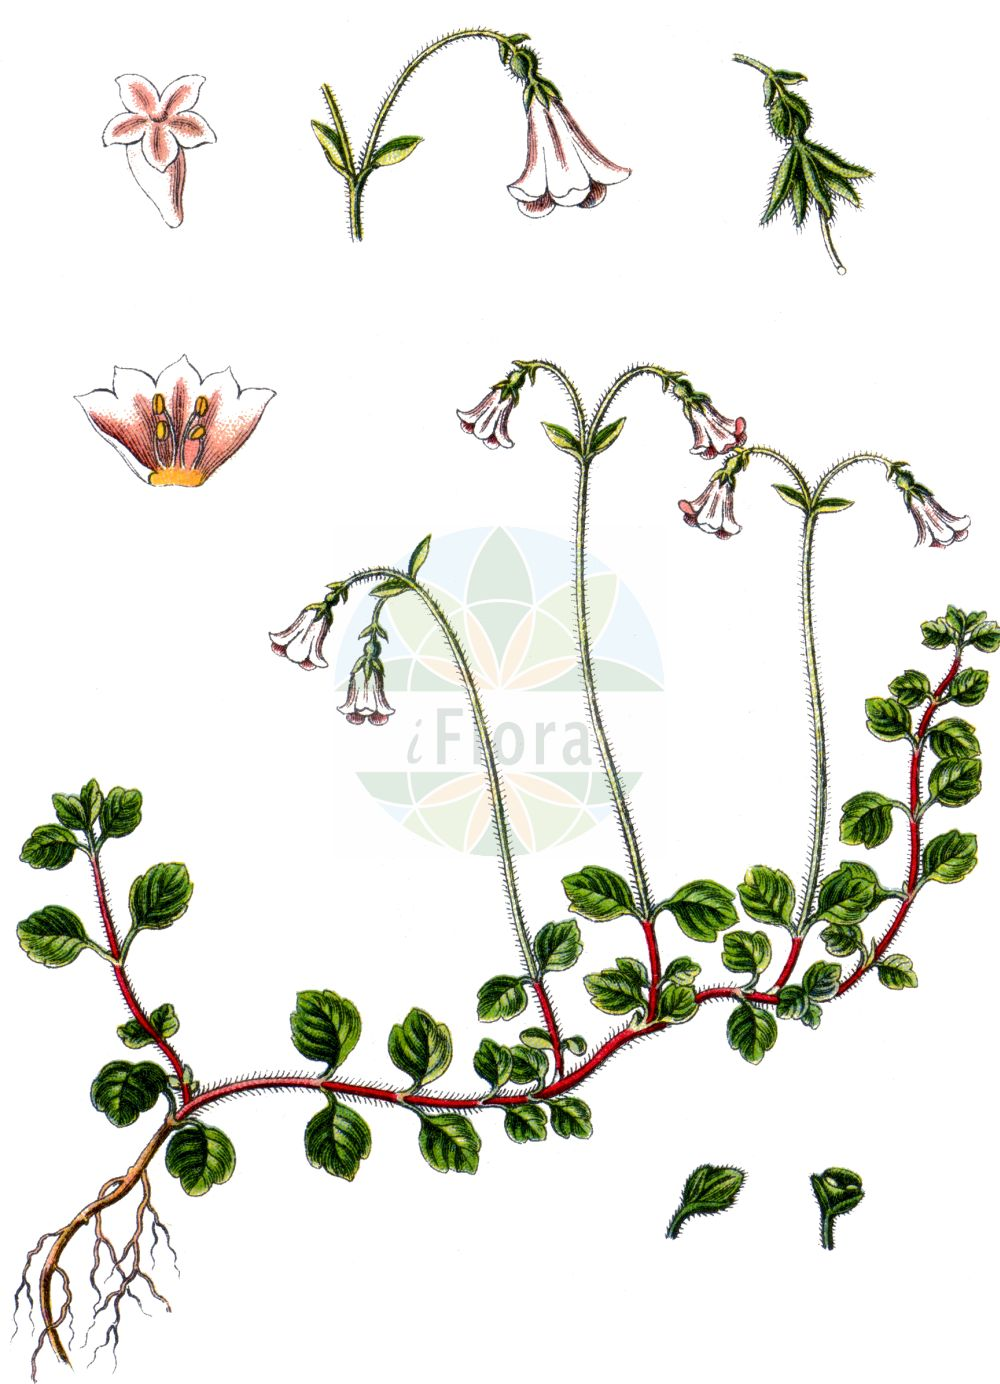 Historische Abbildung von Linnaea borealis (Moosgloeckchen - Twinflower). Das Bild zeigt Blatt, Bluete, Frucht und Same. ---- Historical Drawing of Linnaea borealis (Moosgloeckchen - Twinflower).The image is showing leaf, flower, fruit and seed.(Linnaea borealis,Moosgloeckchen,Twinflower,Linnaea borealis,Moosgloeckchen,Erdgloeckchen,Twinflower,Linnaea,Moosgloeckchen,Twinflower,Caprifoliaceae,Geissblattgewaechse,Honeysuckle family,Blatt,Bluete,Frucht,Same,leaf,flower,fruit,seed,Sturm (1796f))